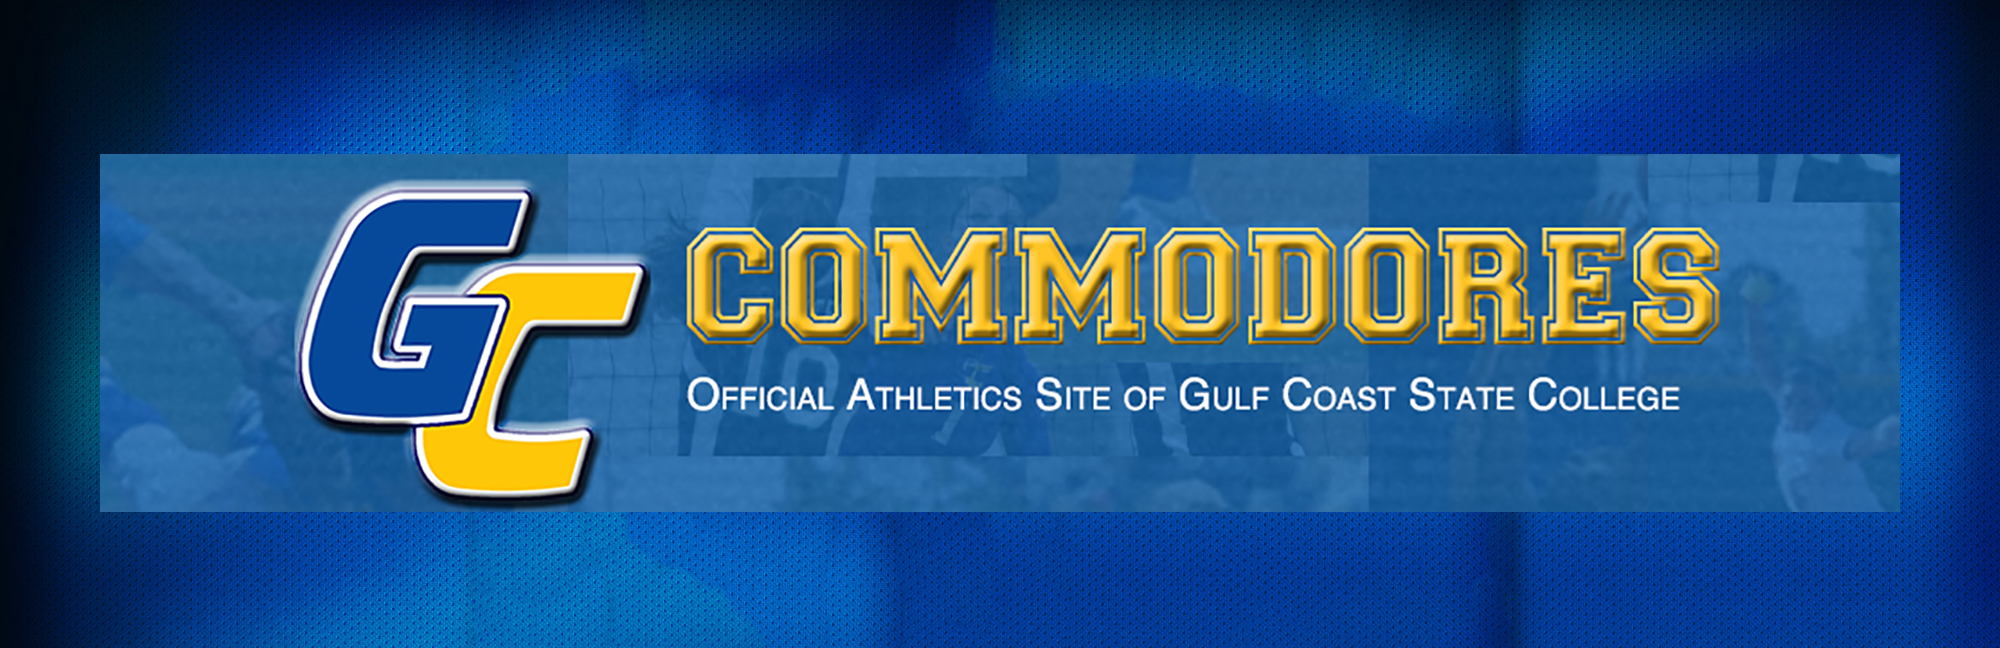 GC Commodores - Official Athletics Site of Gulf Coast State College